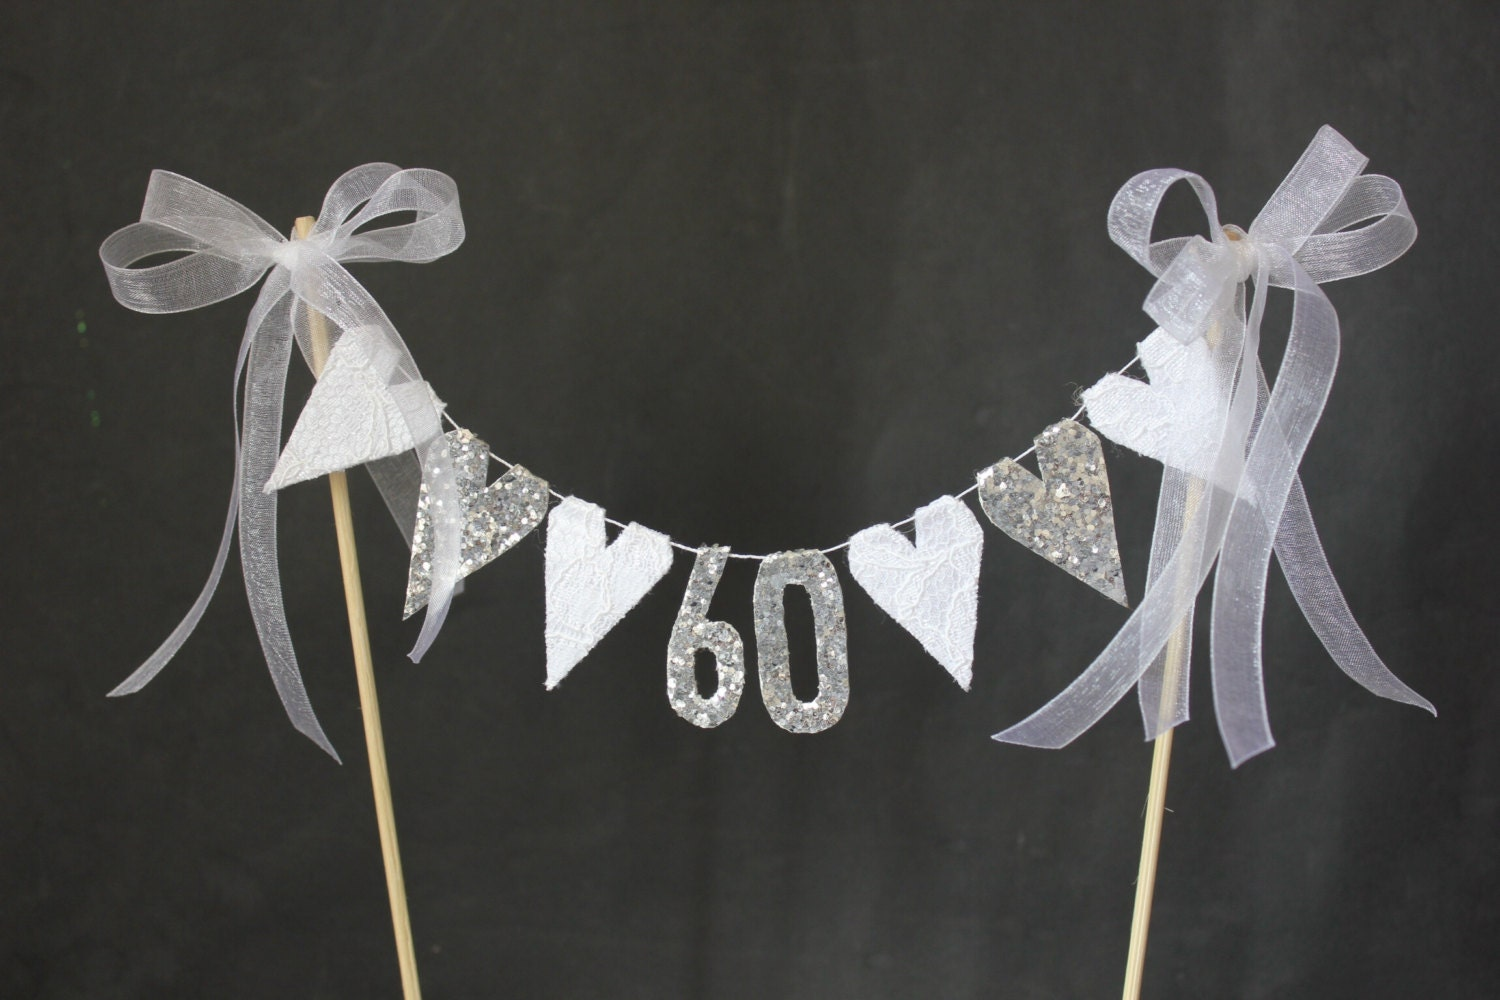 Diamond Wedding Anniversary cake topper suitable for 60th